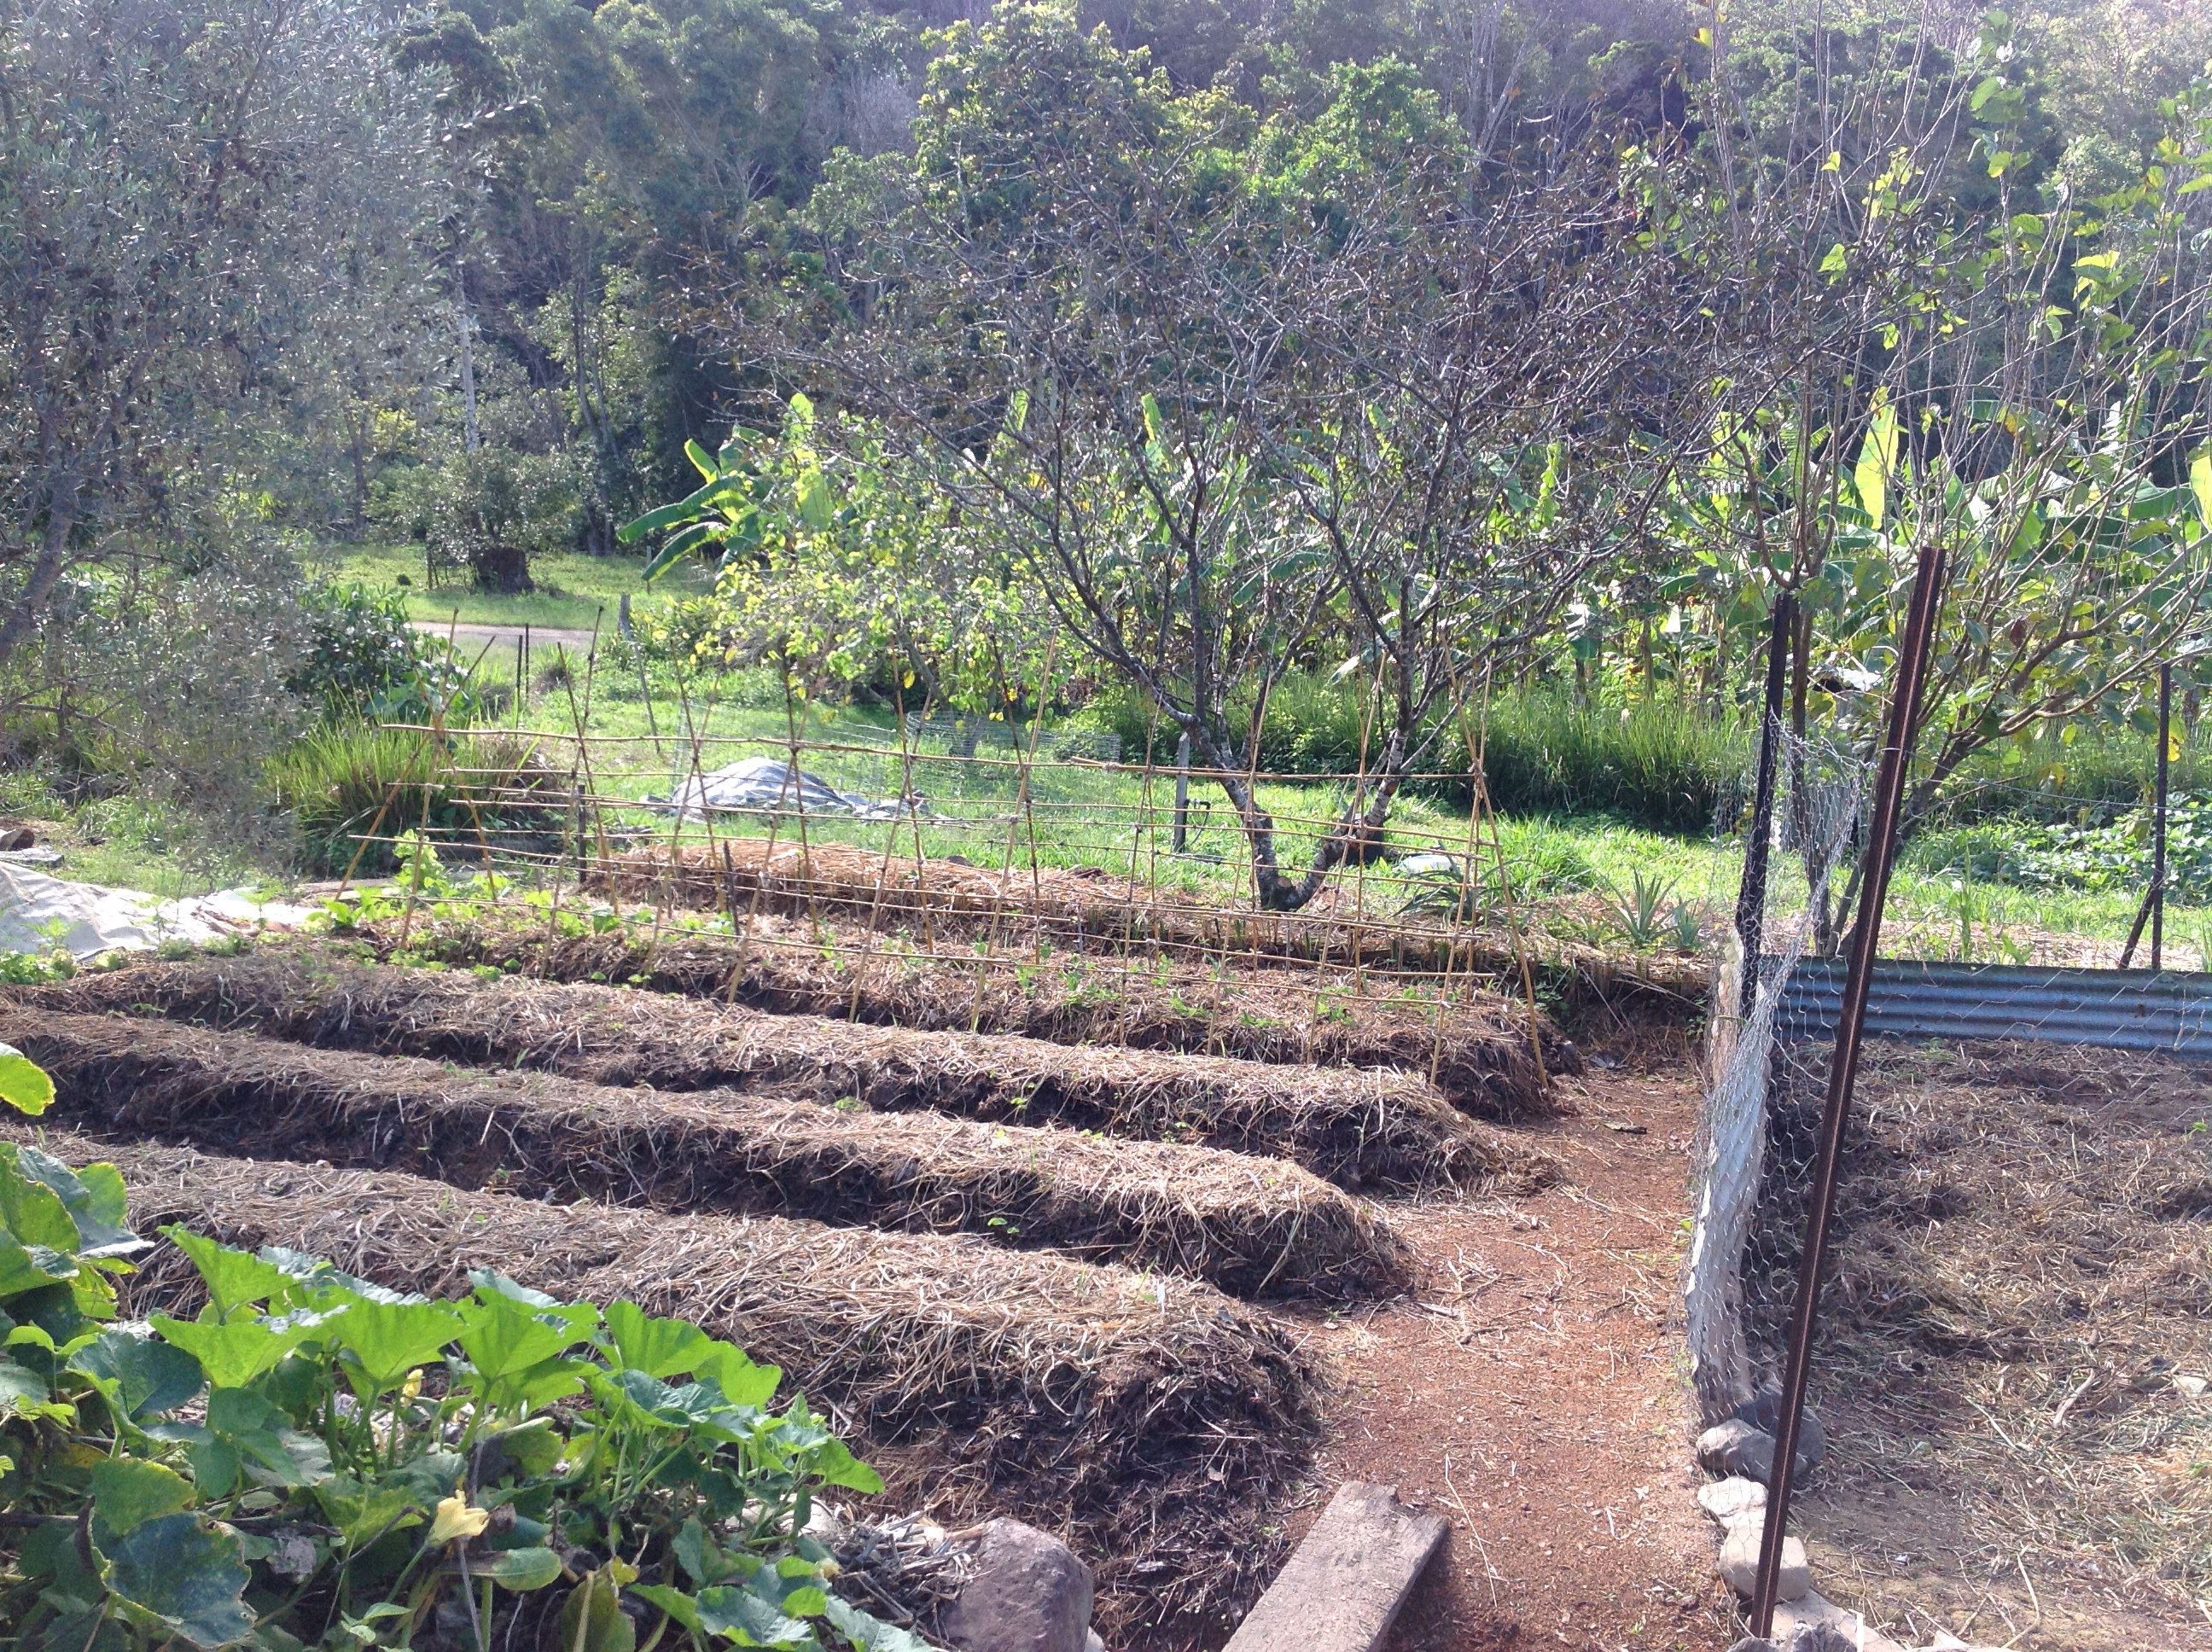 Backyard Permaculture Gardening Australia : garden beds, with sight of the Food Forest behind At the Permaculture